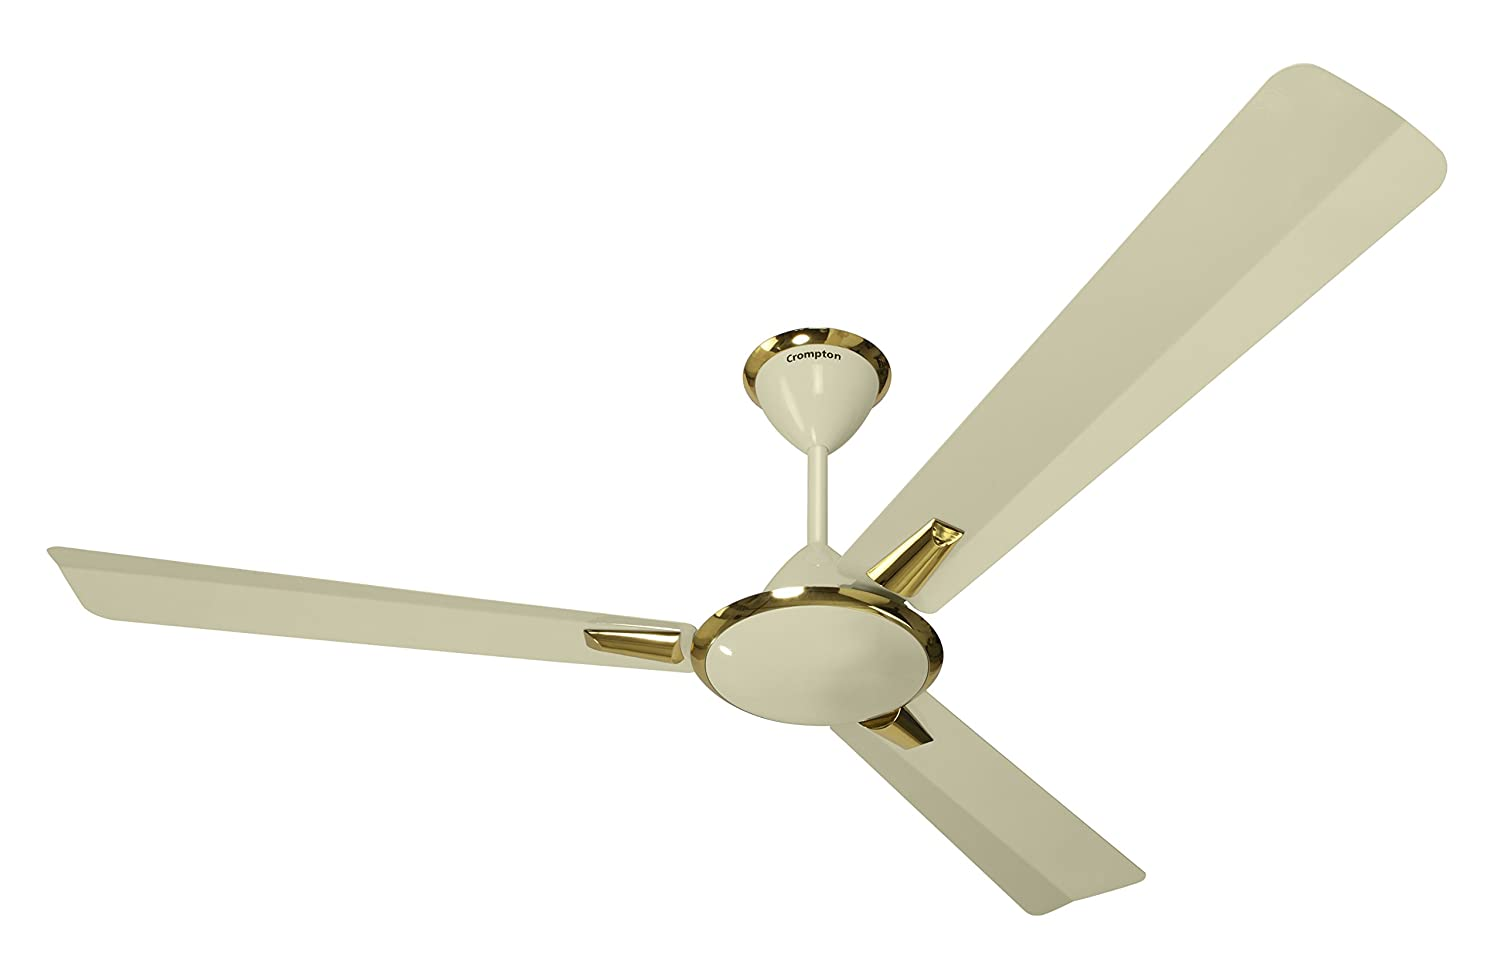 Crompton Aura 48 Inch 74 Watt Decorative High Sd Ceiling Fan Ivory At Low S In India